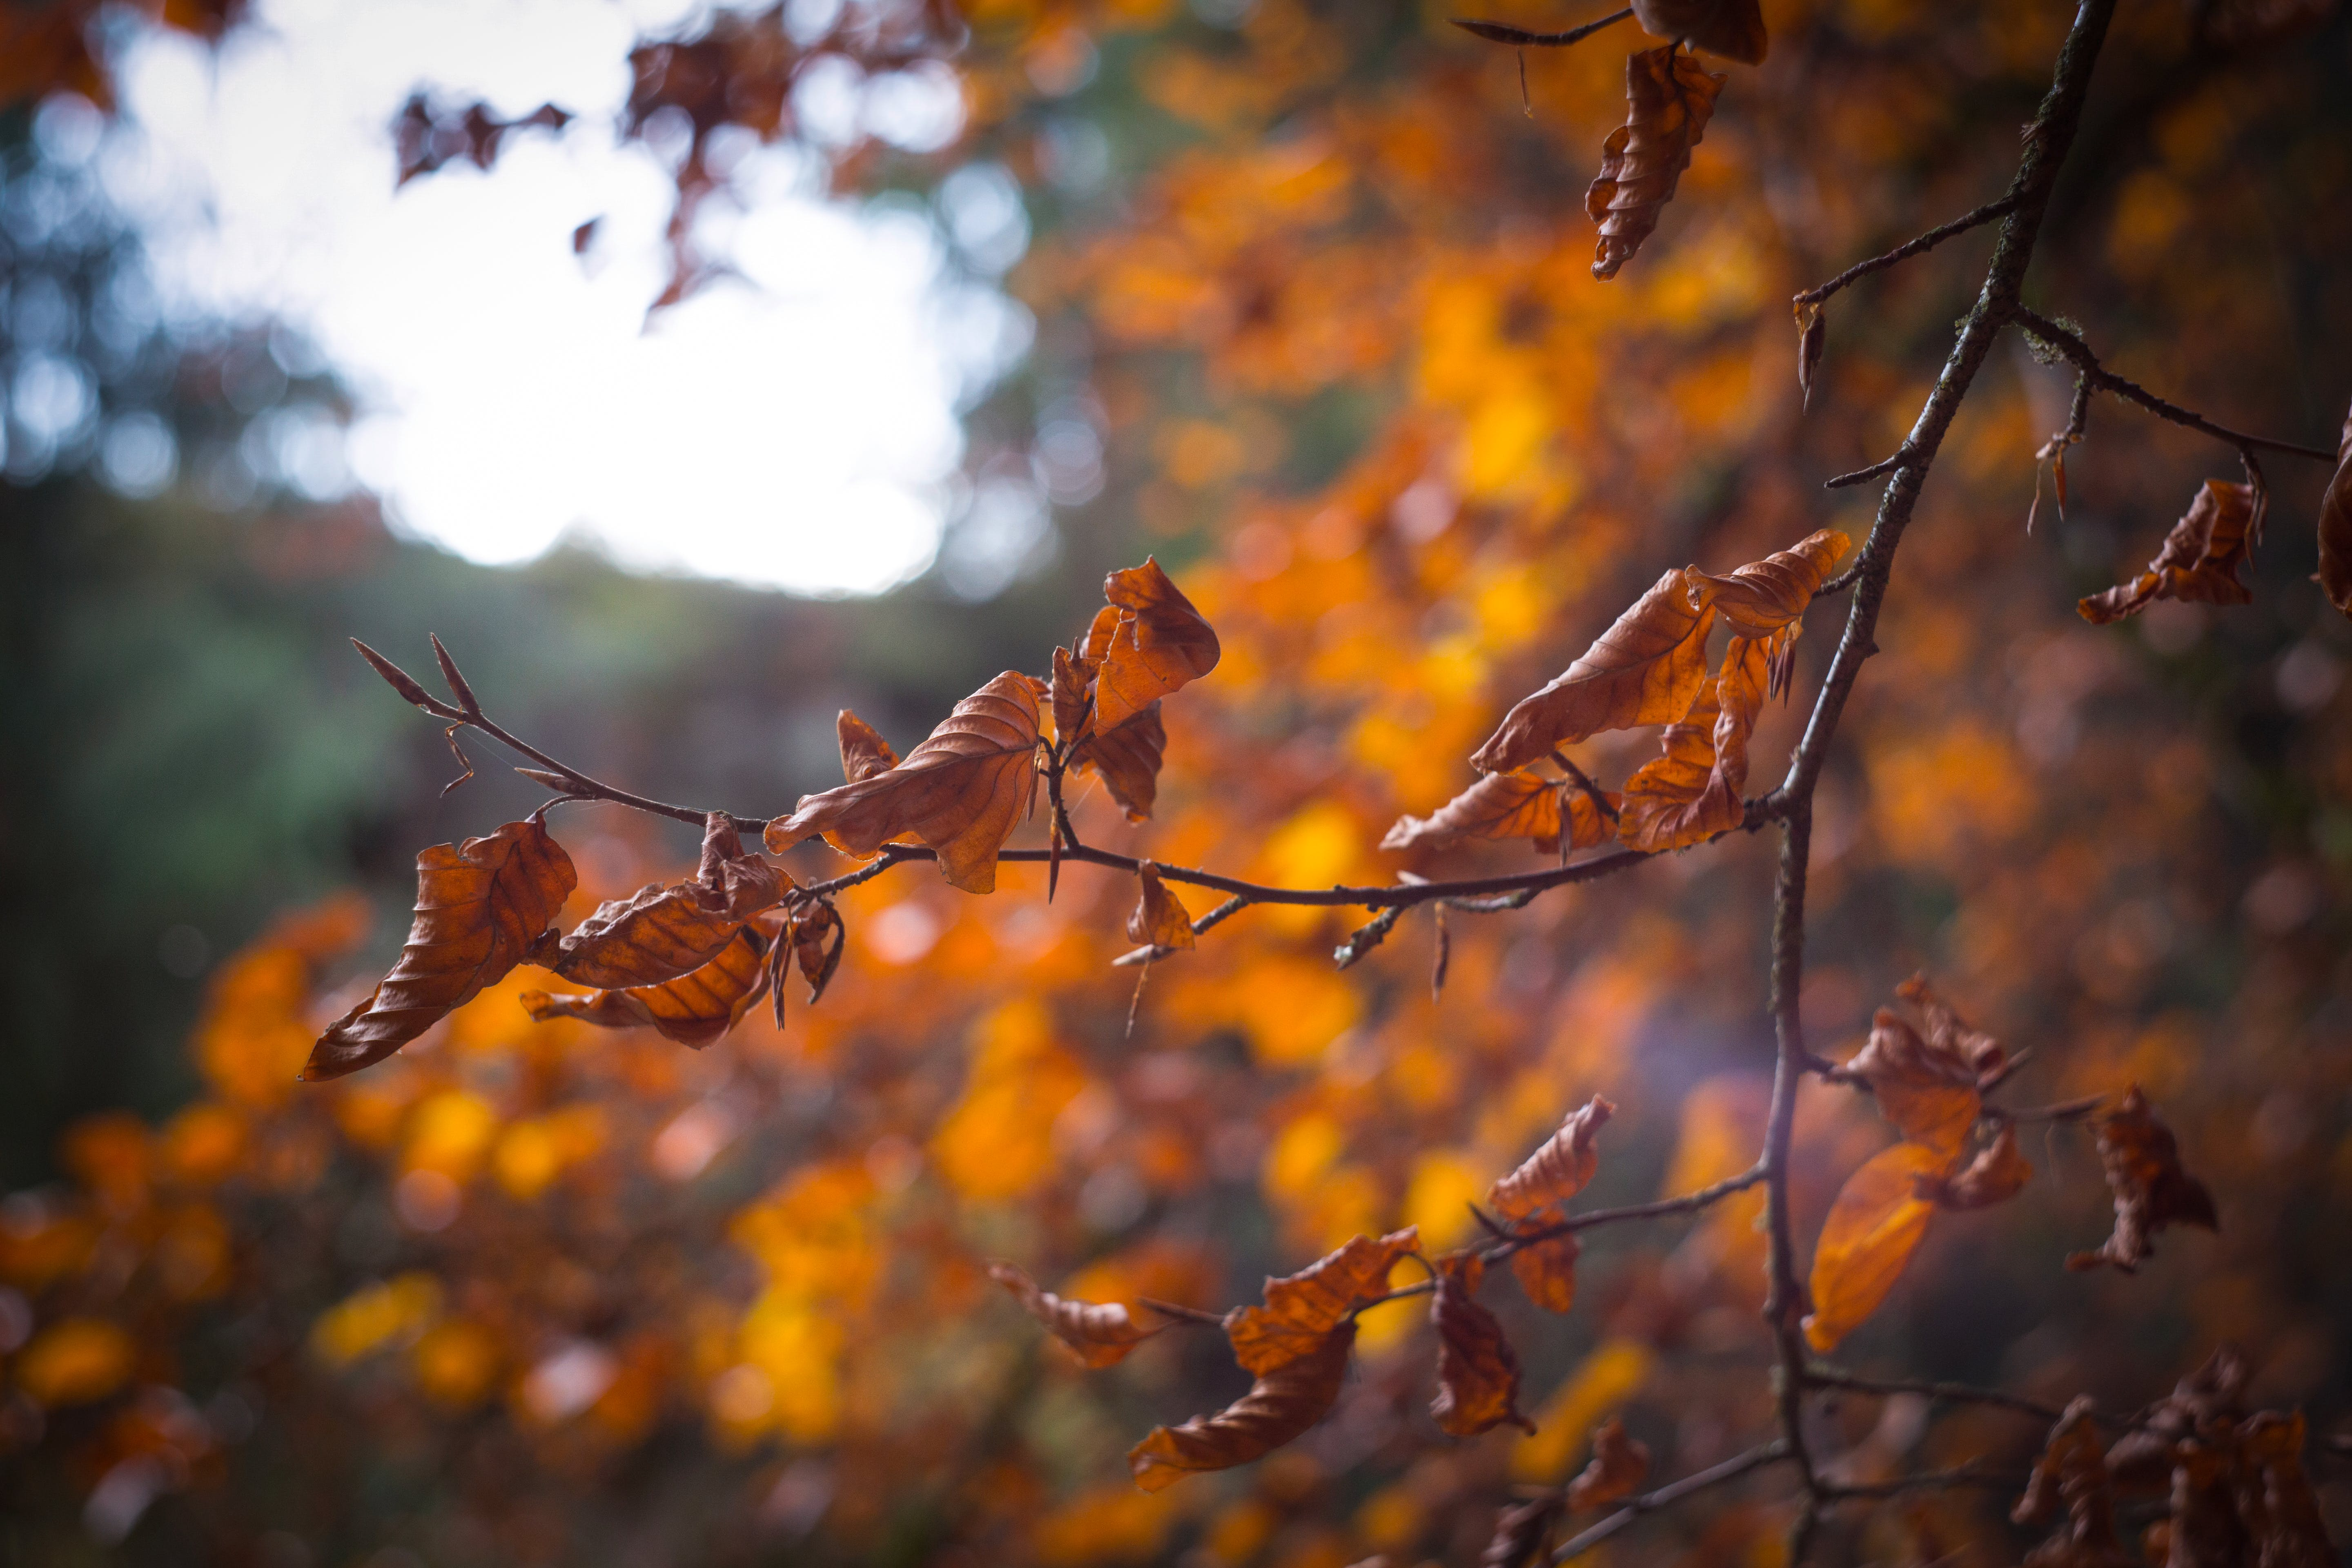 Selective Focus of Withered Leaves of Tree